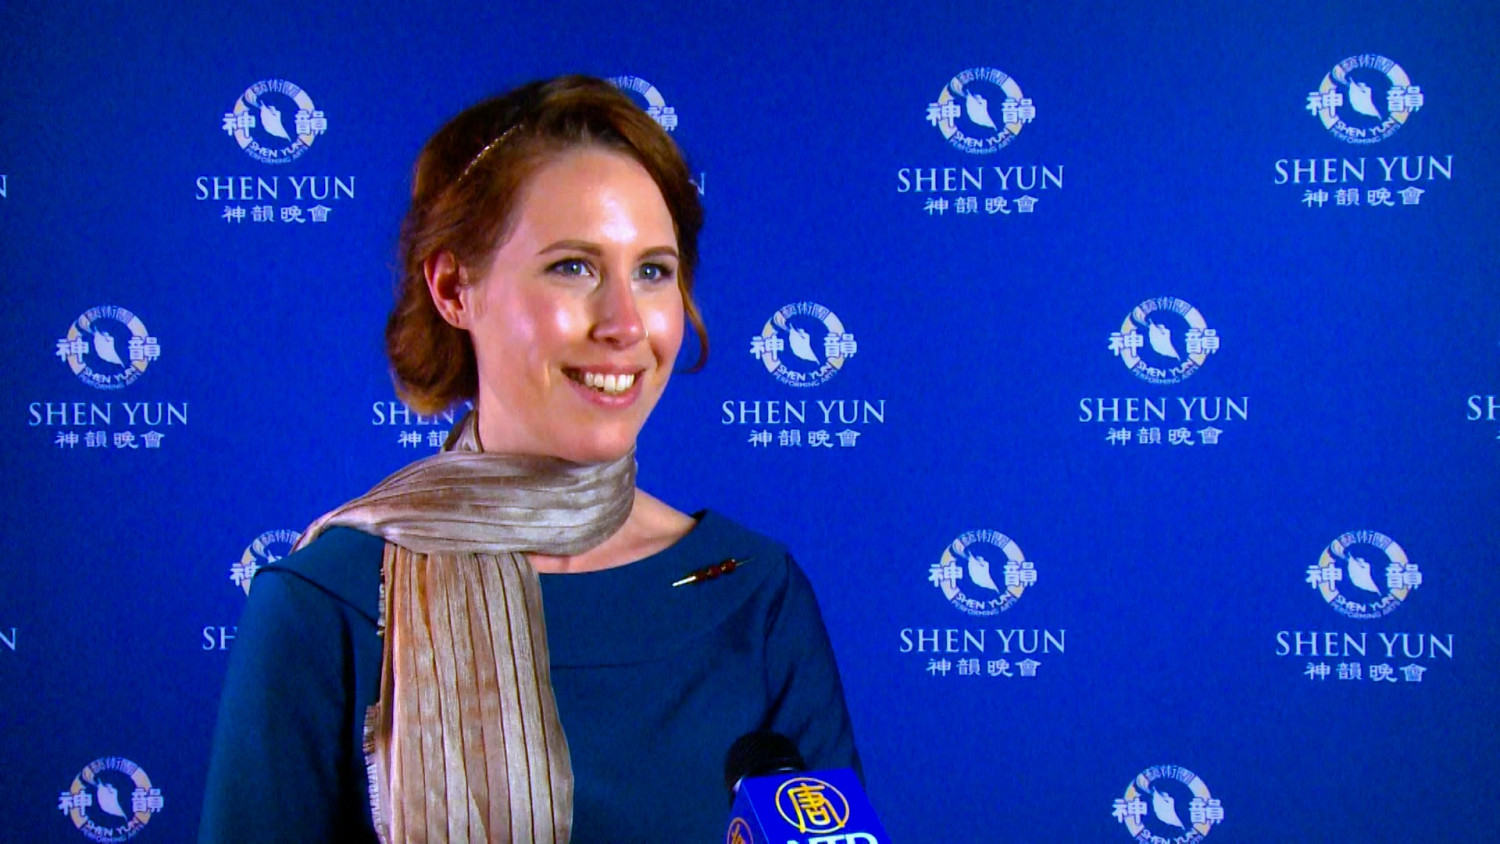 Company CEO Finds Deeper Meaning Behind Shen Yun